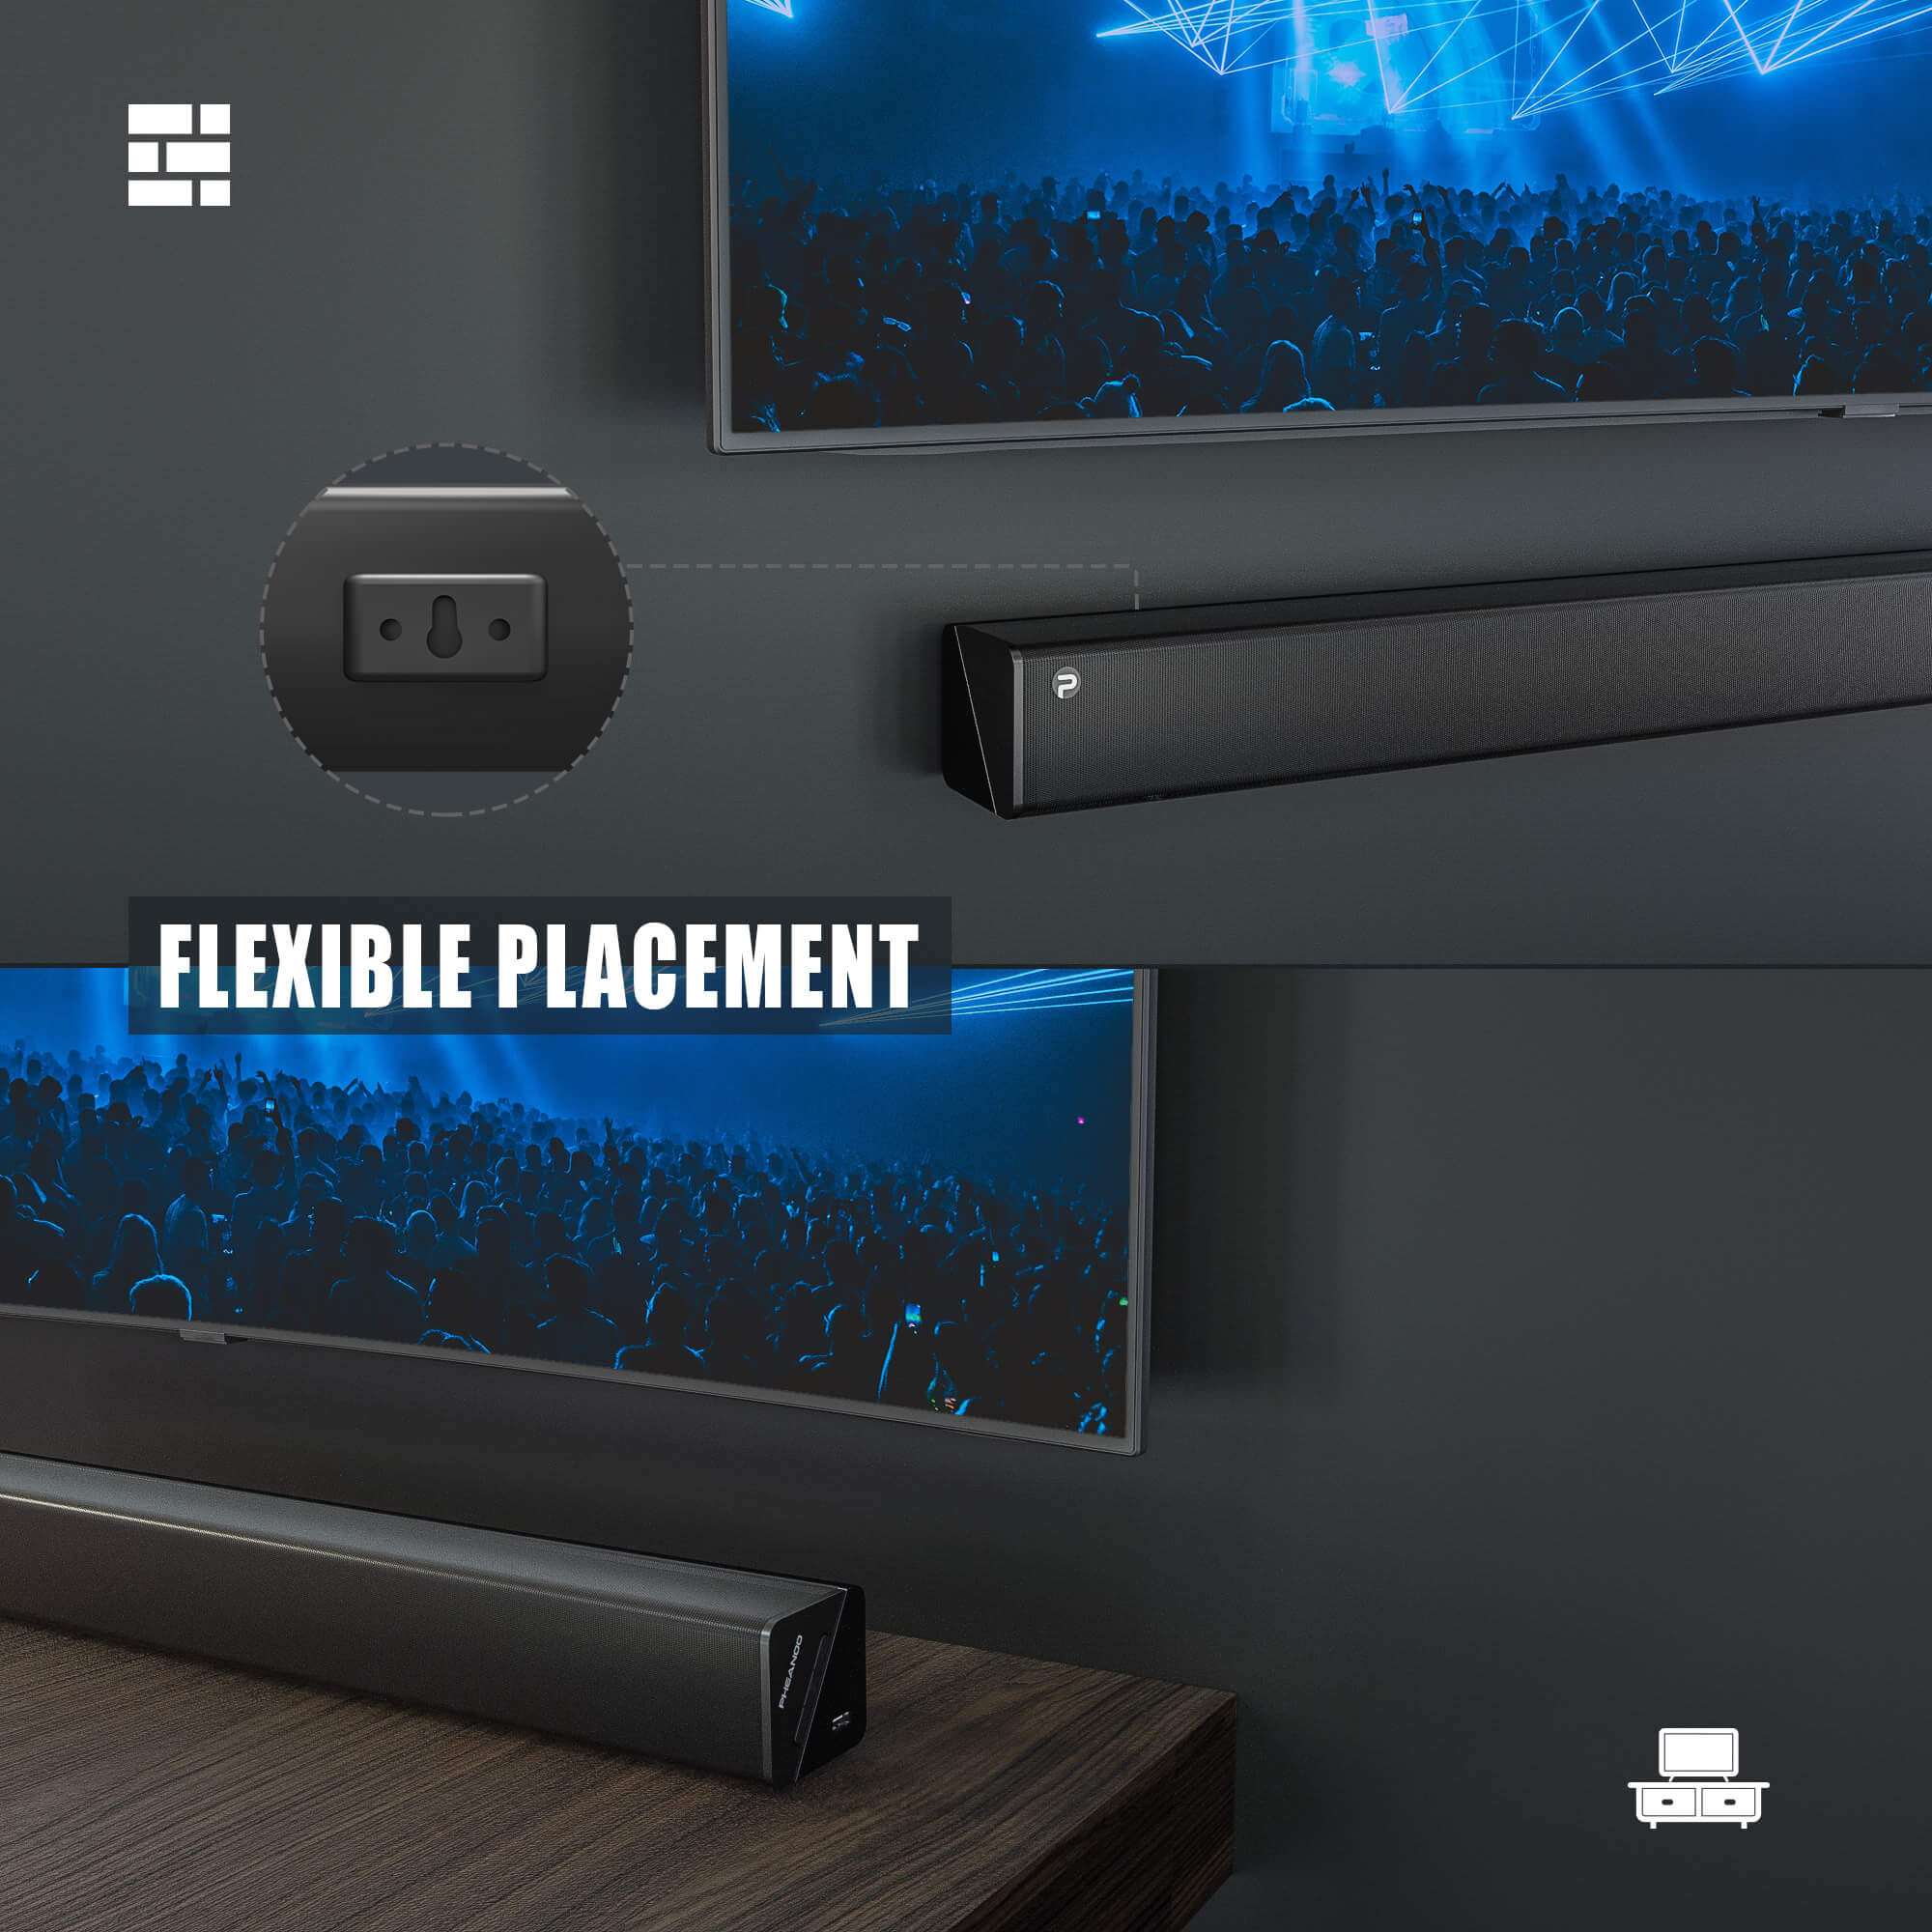 Pheanoo Audio Ltd Launches 2.1CH Sound Bar Systems with Subwoofer For Home Theater